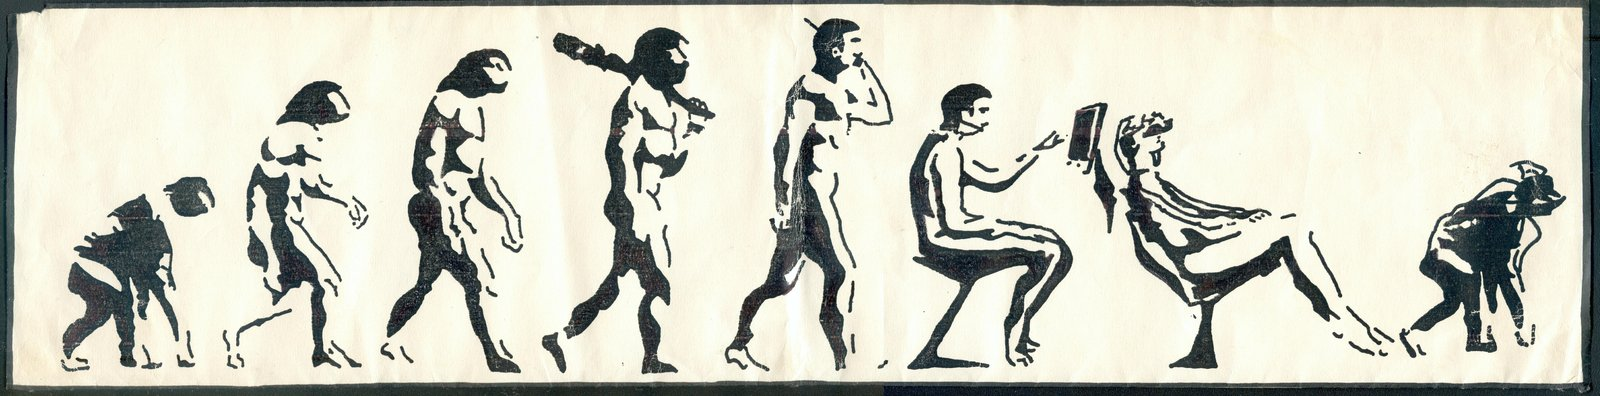 Human_evolution_by_manleo